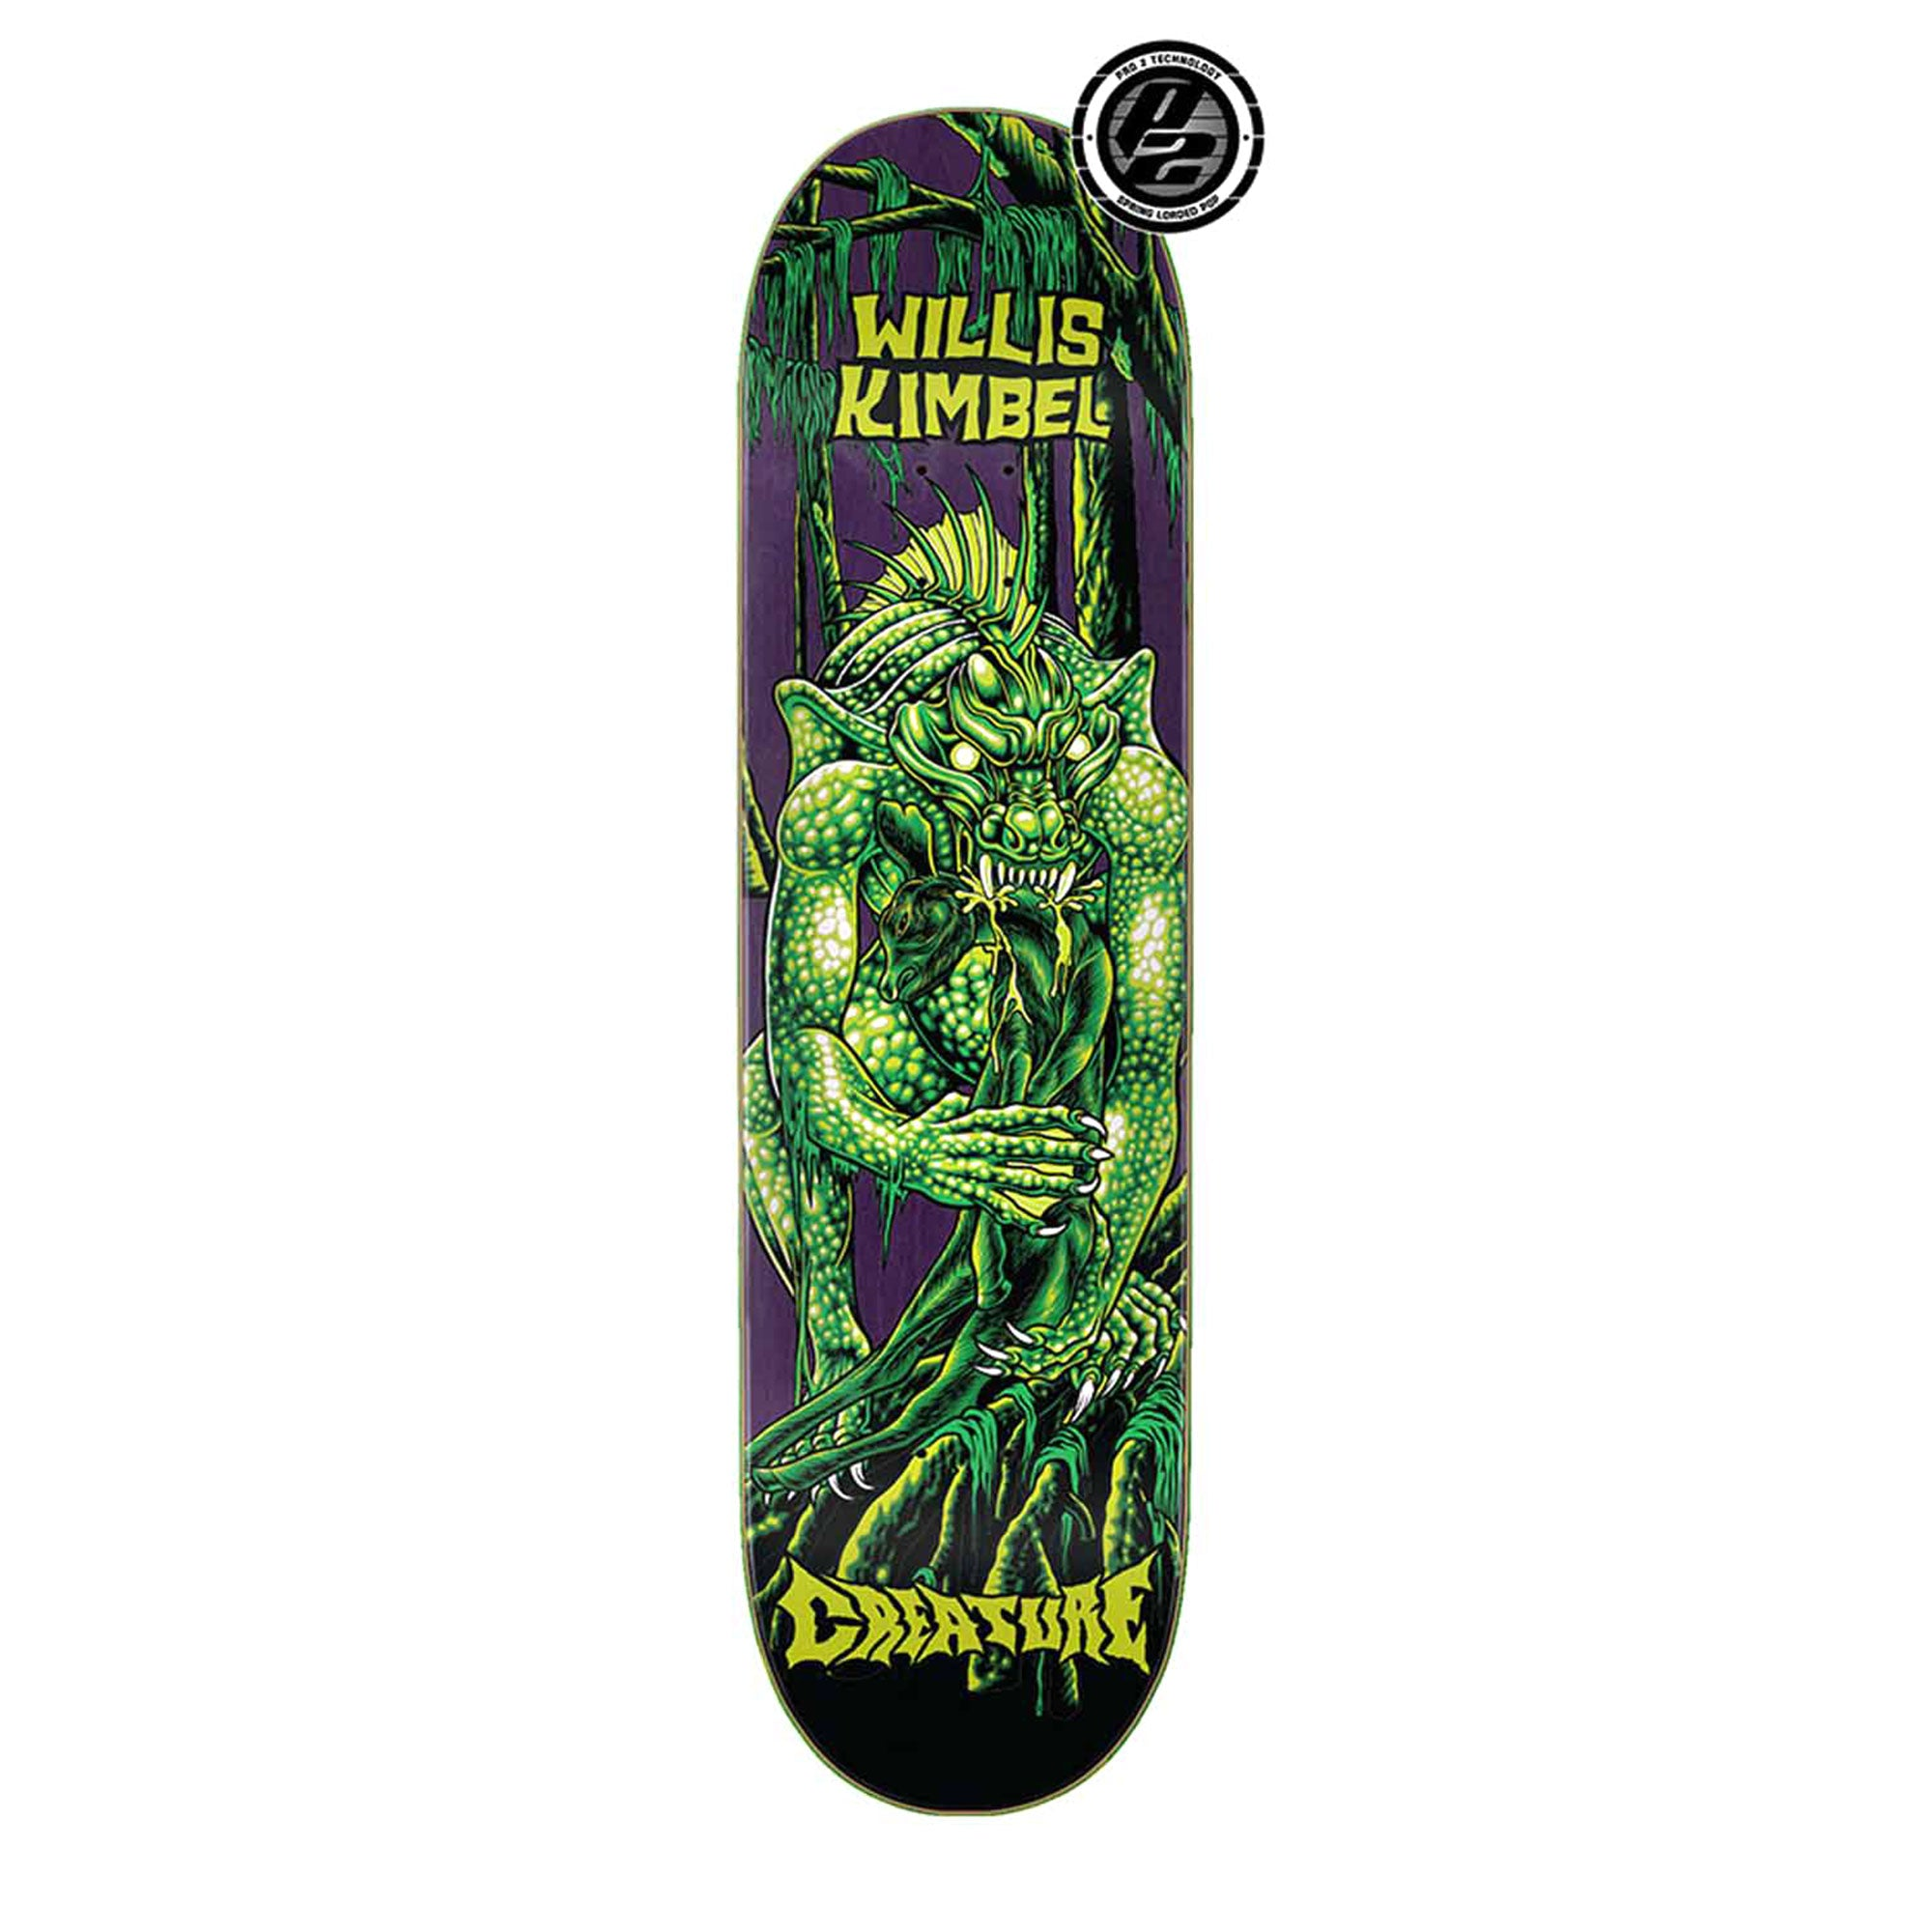 Creature Kimbel Swamp Lurker P2 Deck Product Photo #1